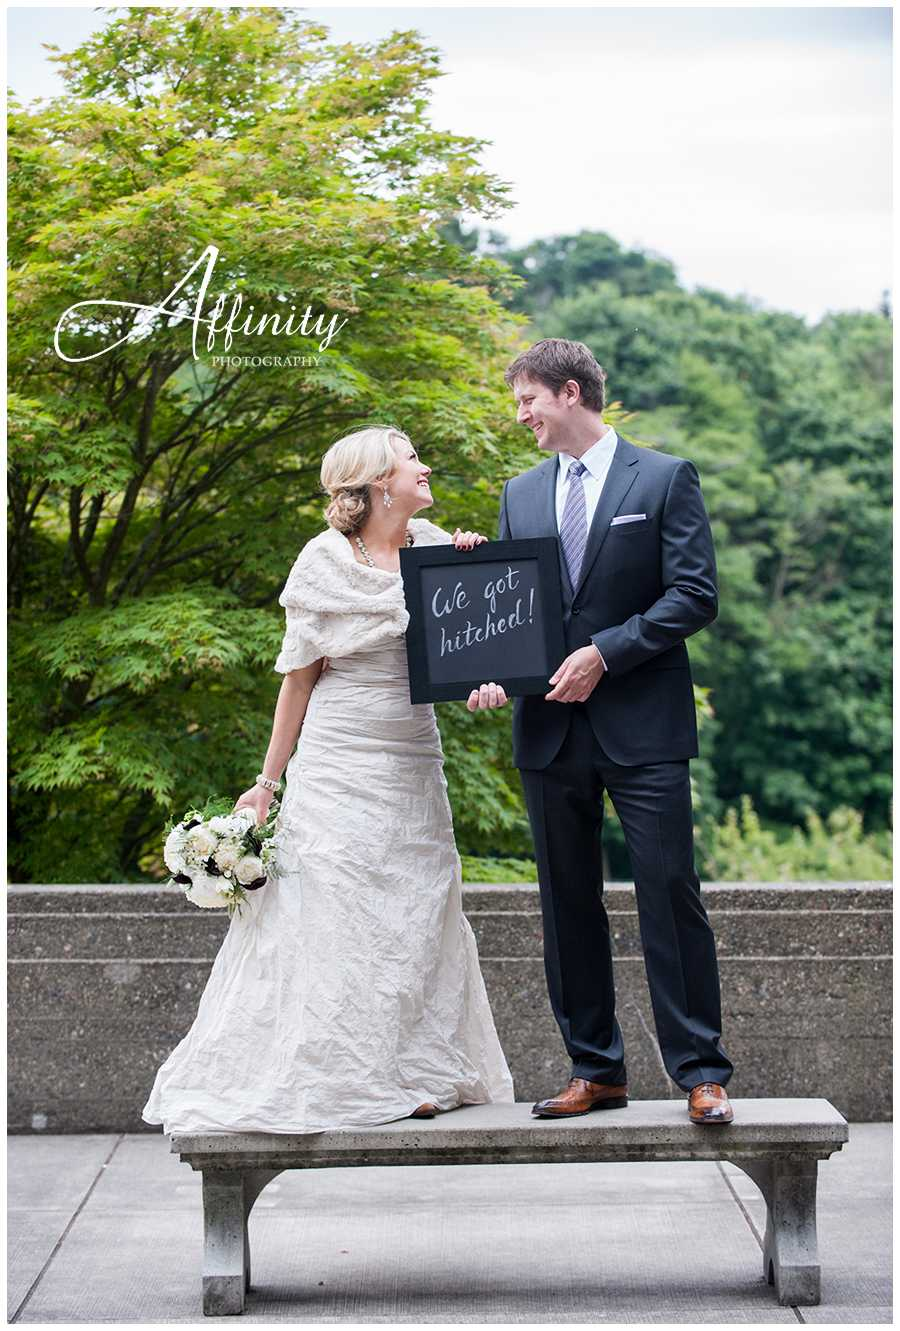 09-we-got-hitched-chalkboard-sign.jpg